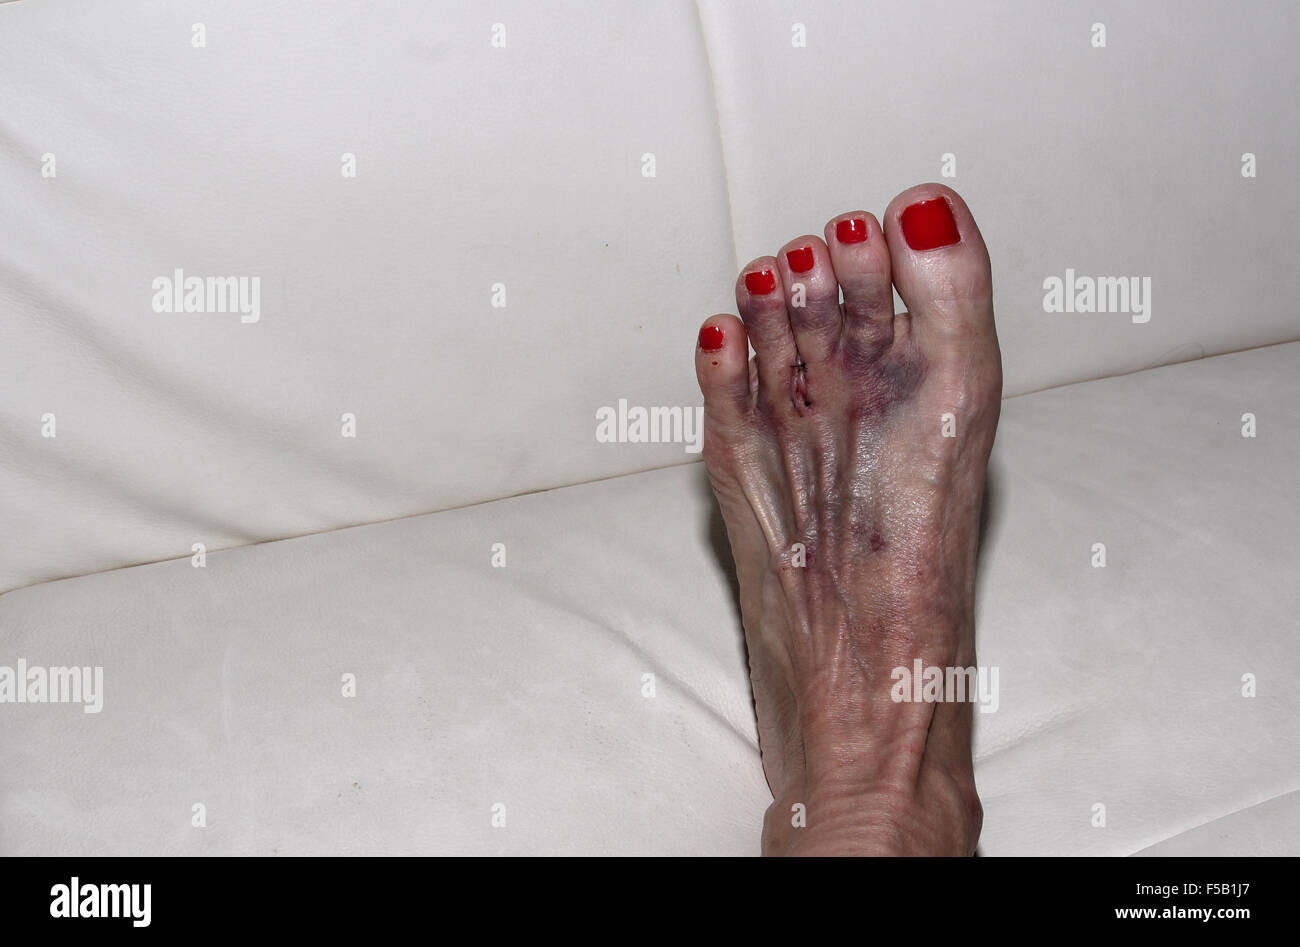 foot after morton s neuroma surgery between the second and third toe stock photo 89367887 alamy. Black Bedroom Furniture Sets. Home Design Ideas